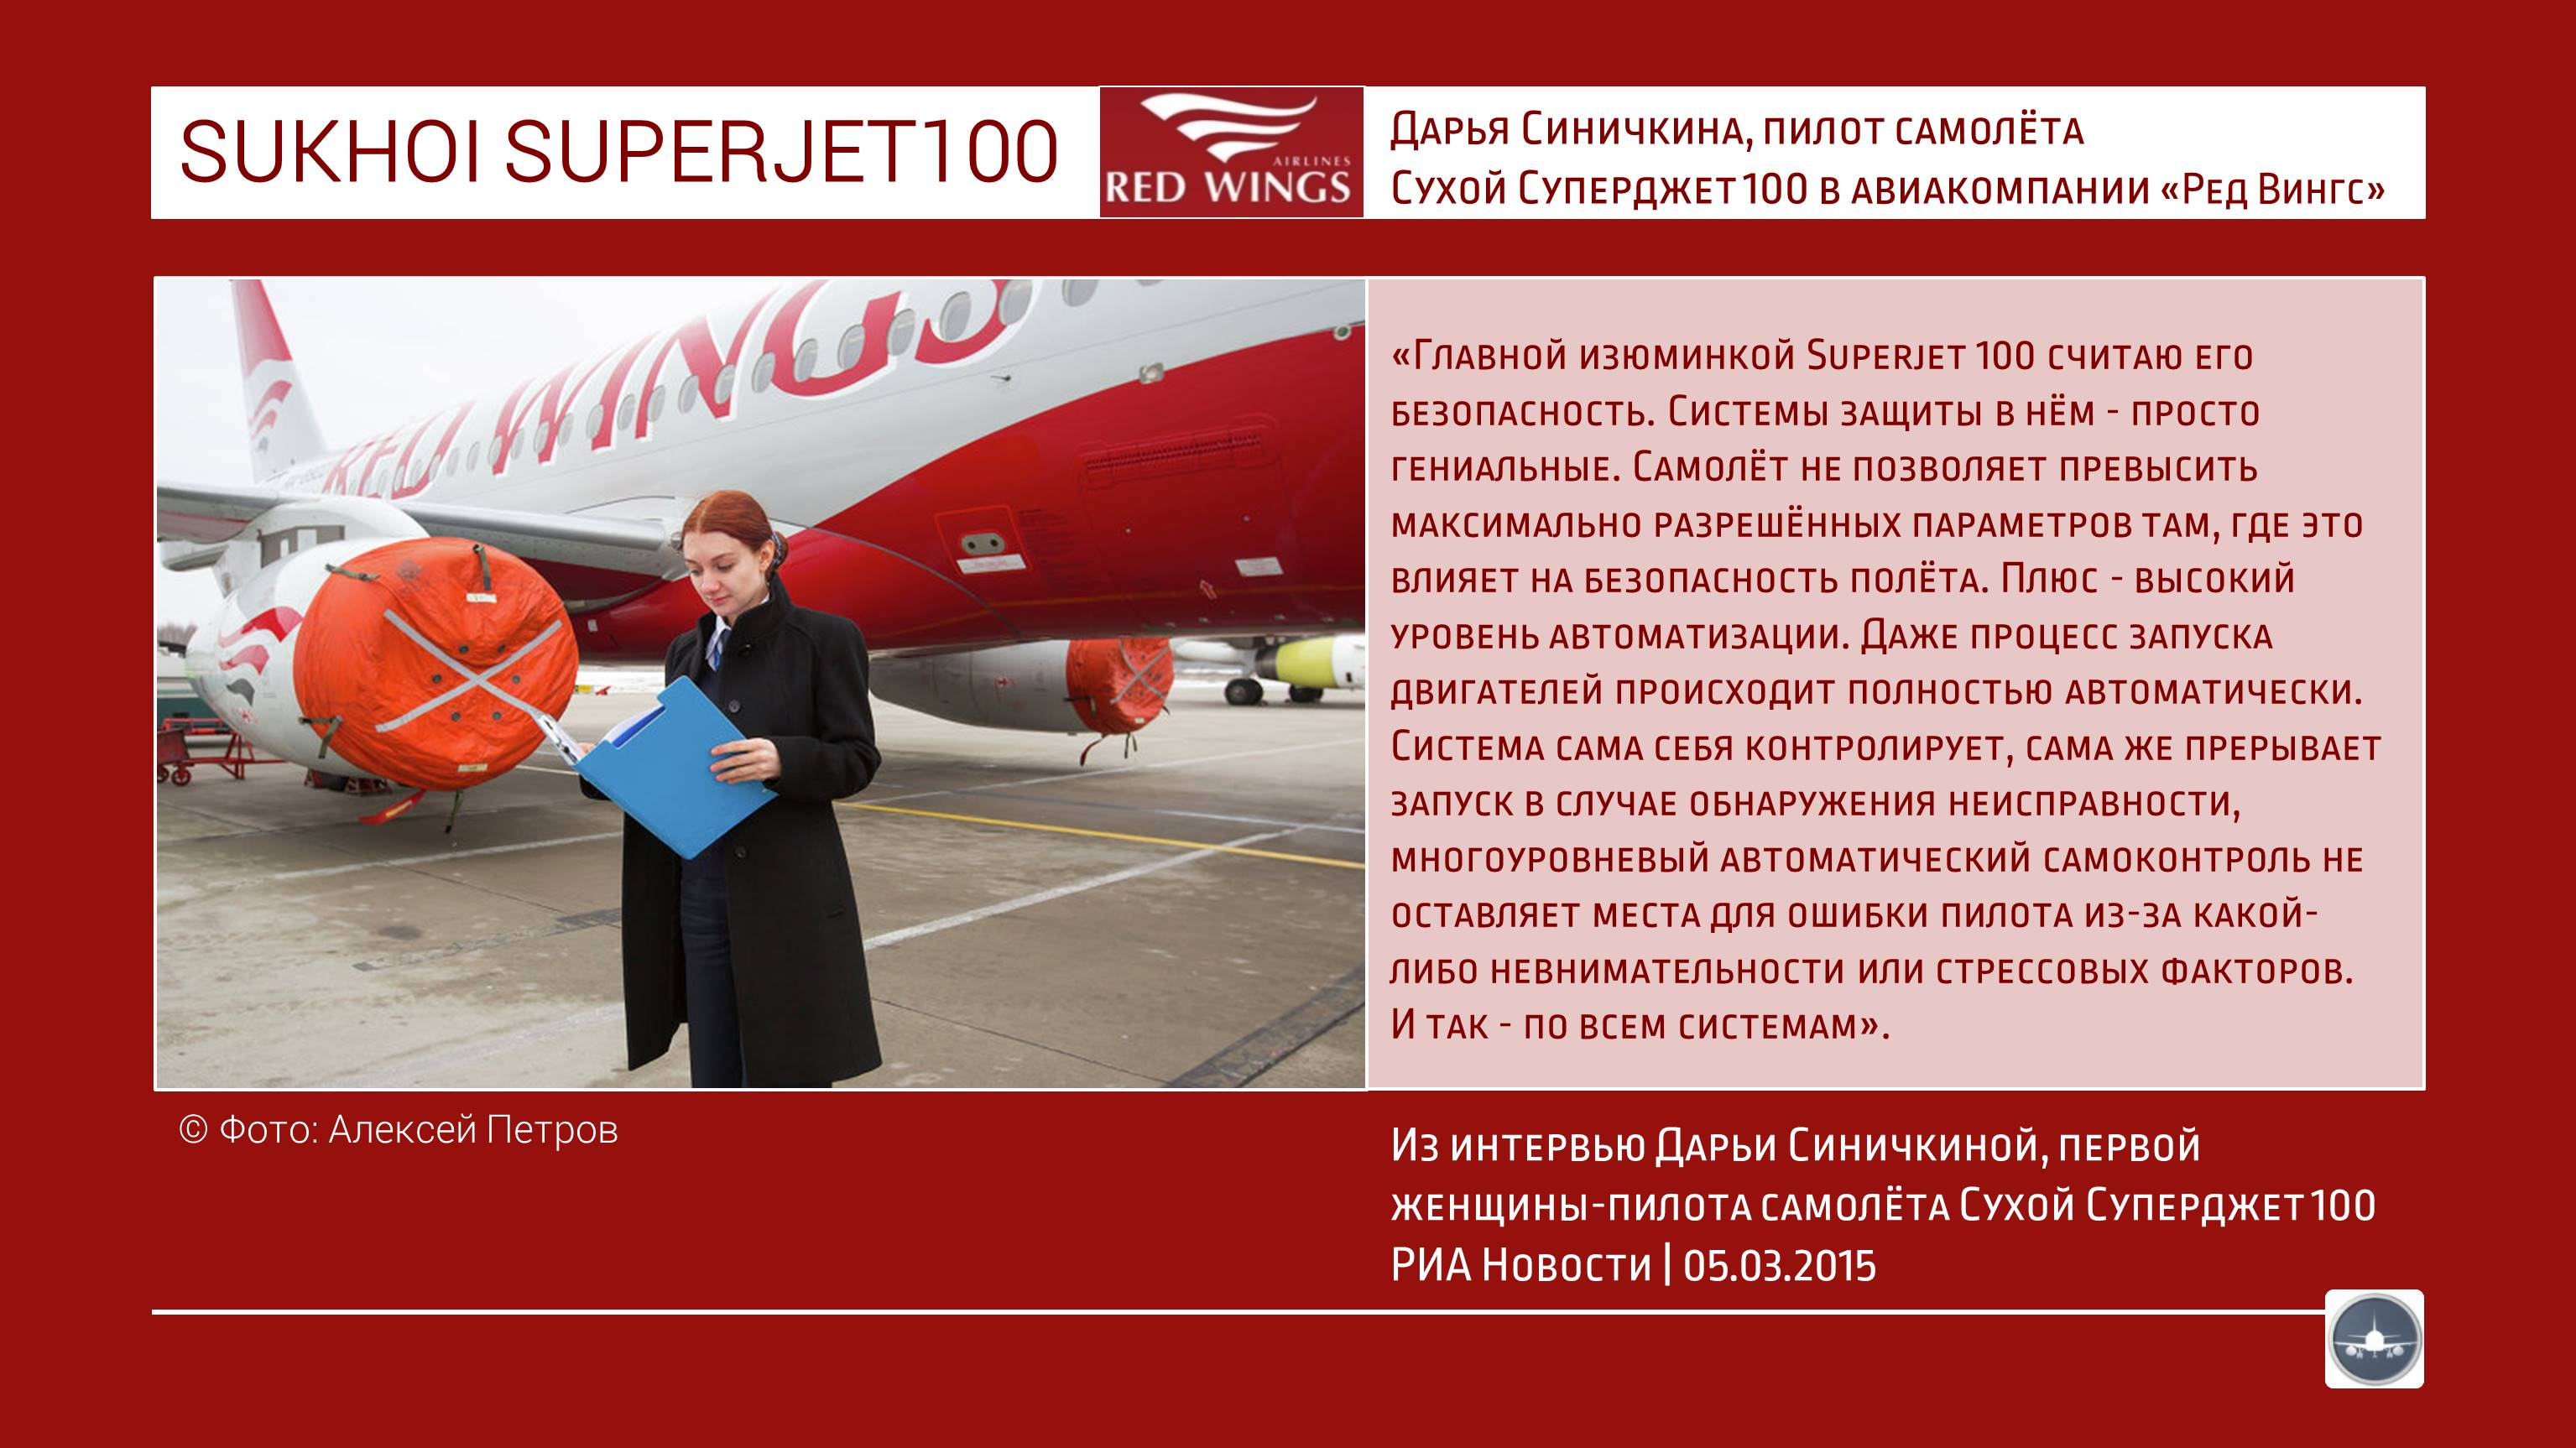 Sukhoi%20Superjet%20SSJ100%20RRJ95%20Red%20Wings%20Suchoi%20%282%29.JPG